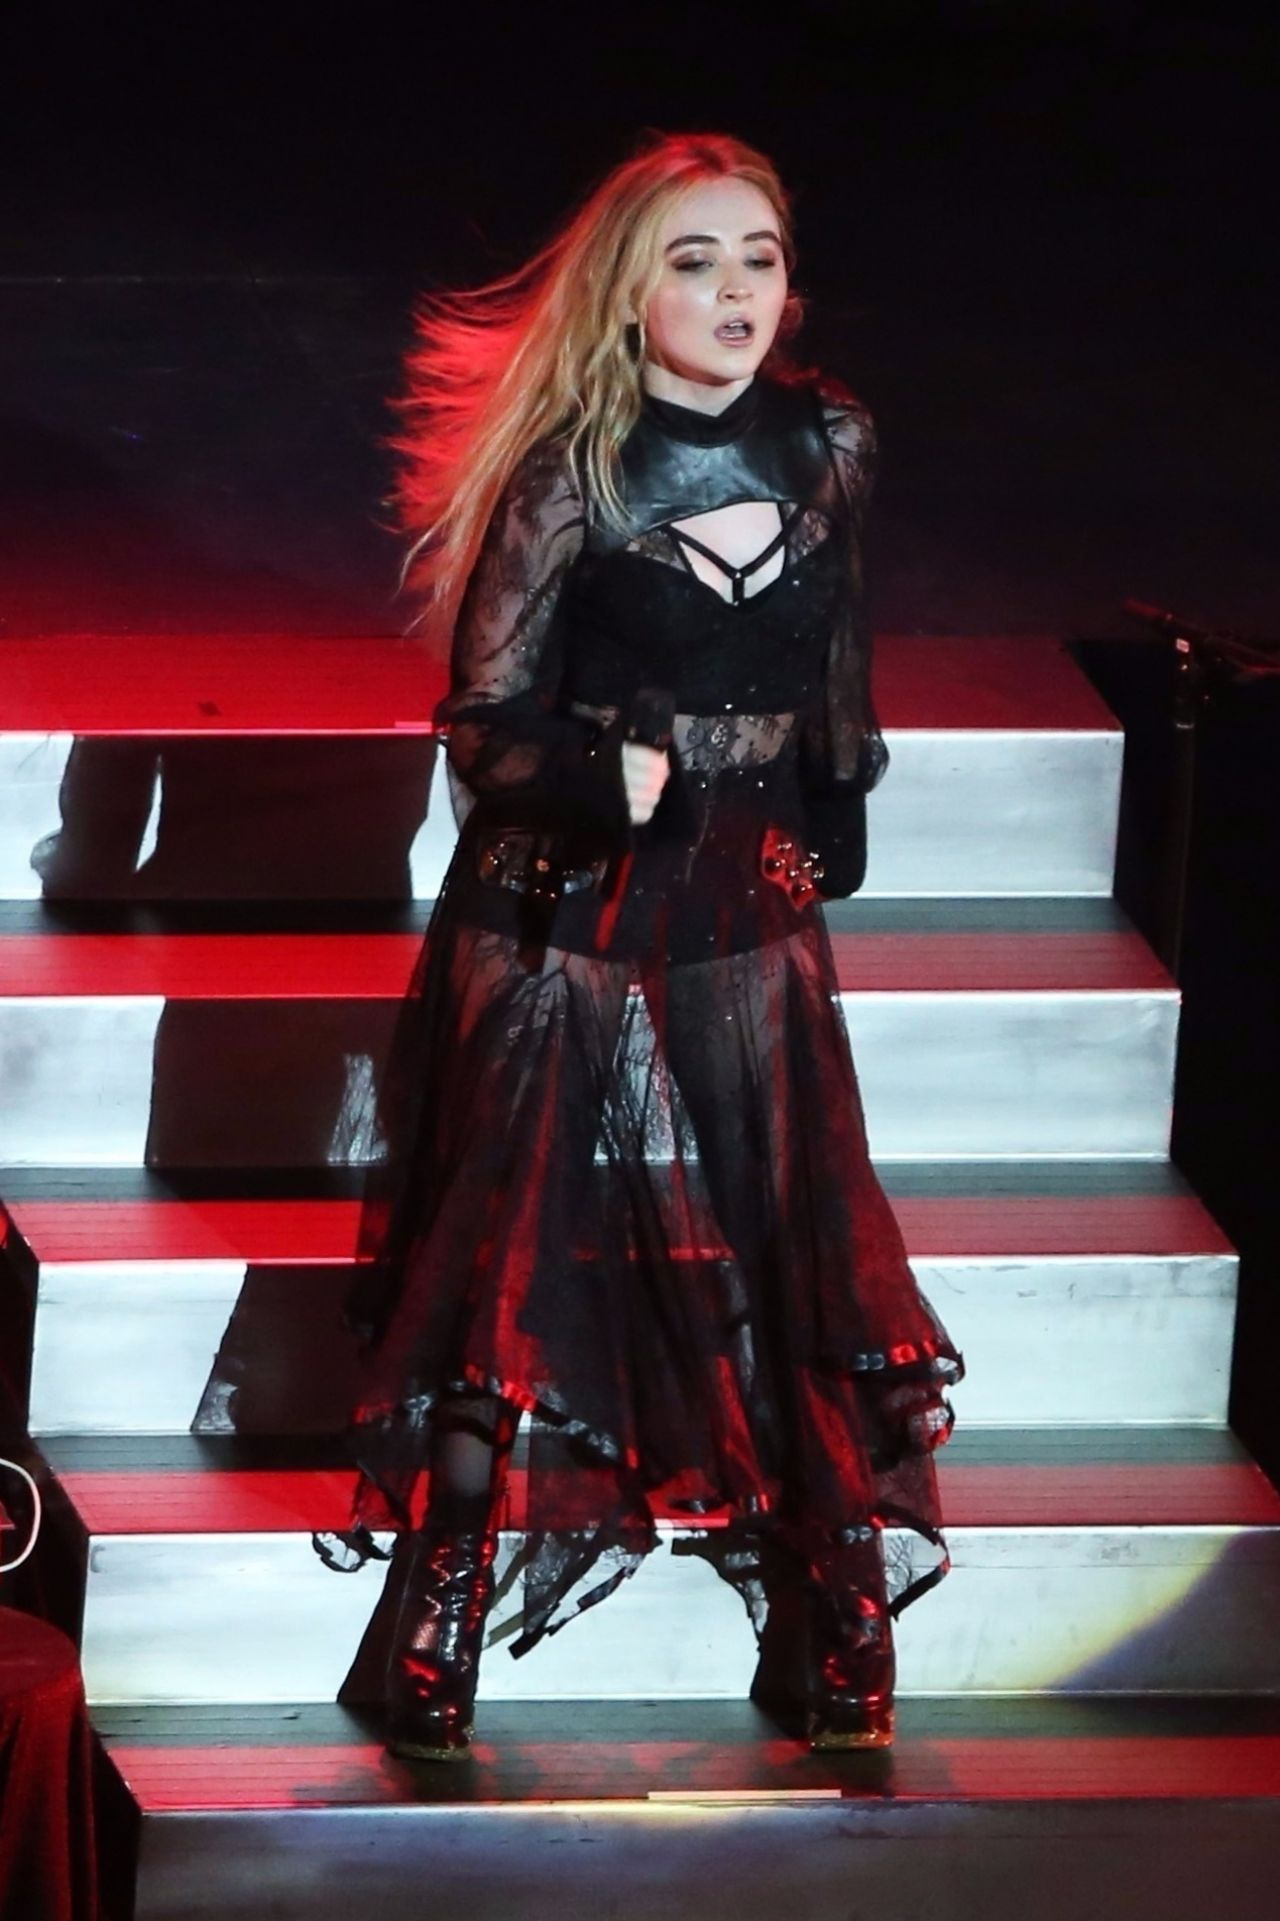 Sabrina Carpenter Performs Live At The Vogue Theatre For